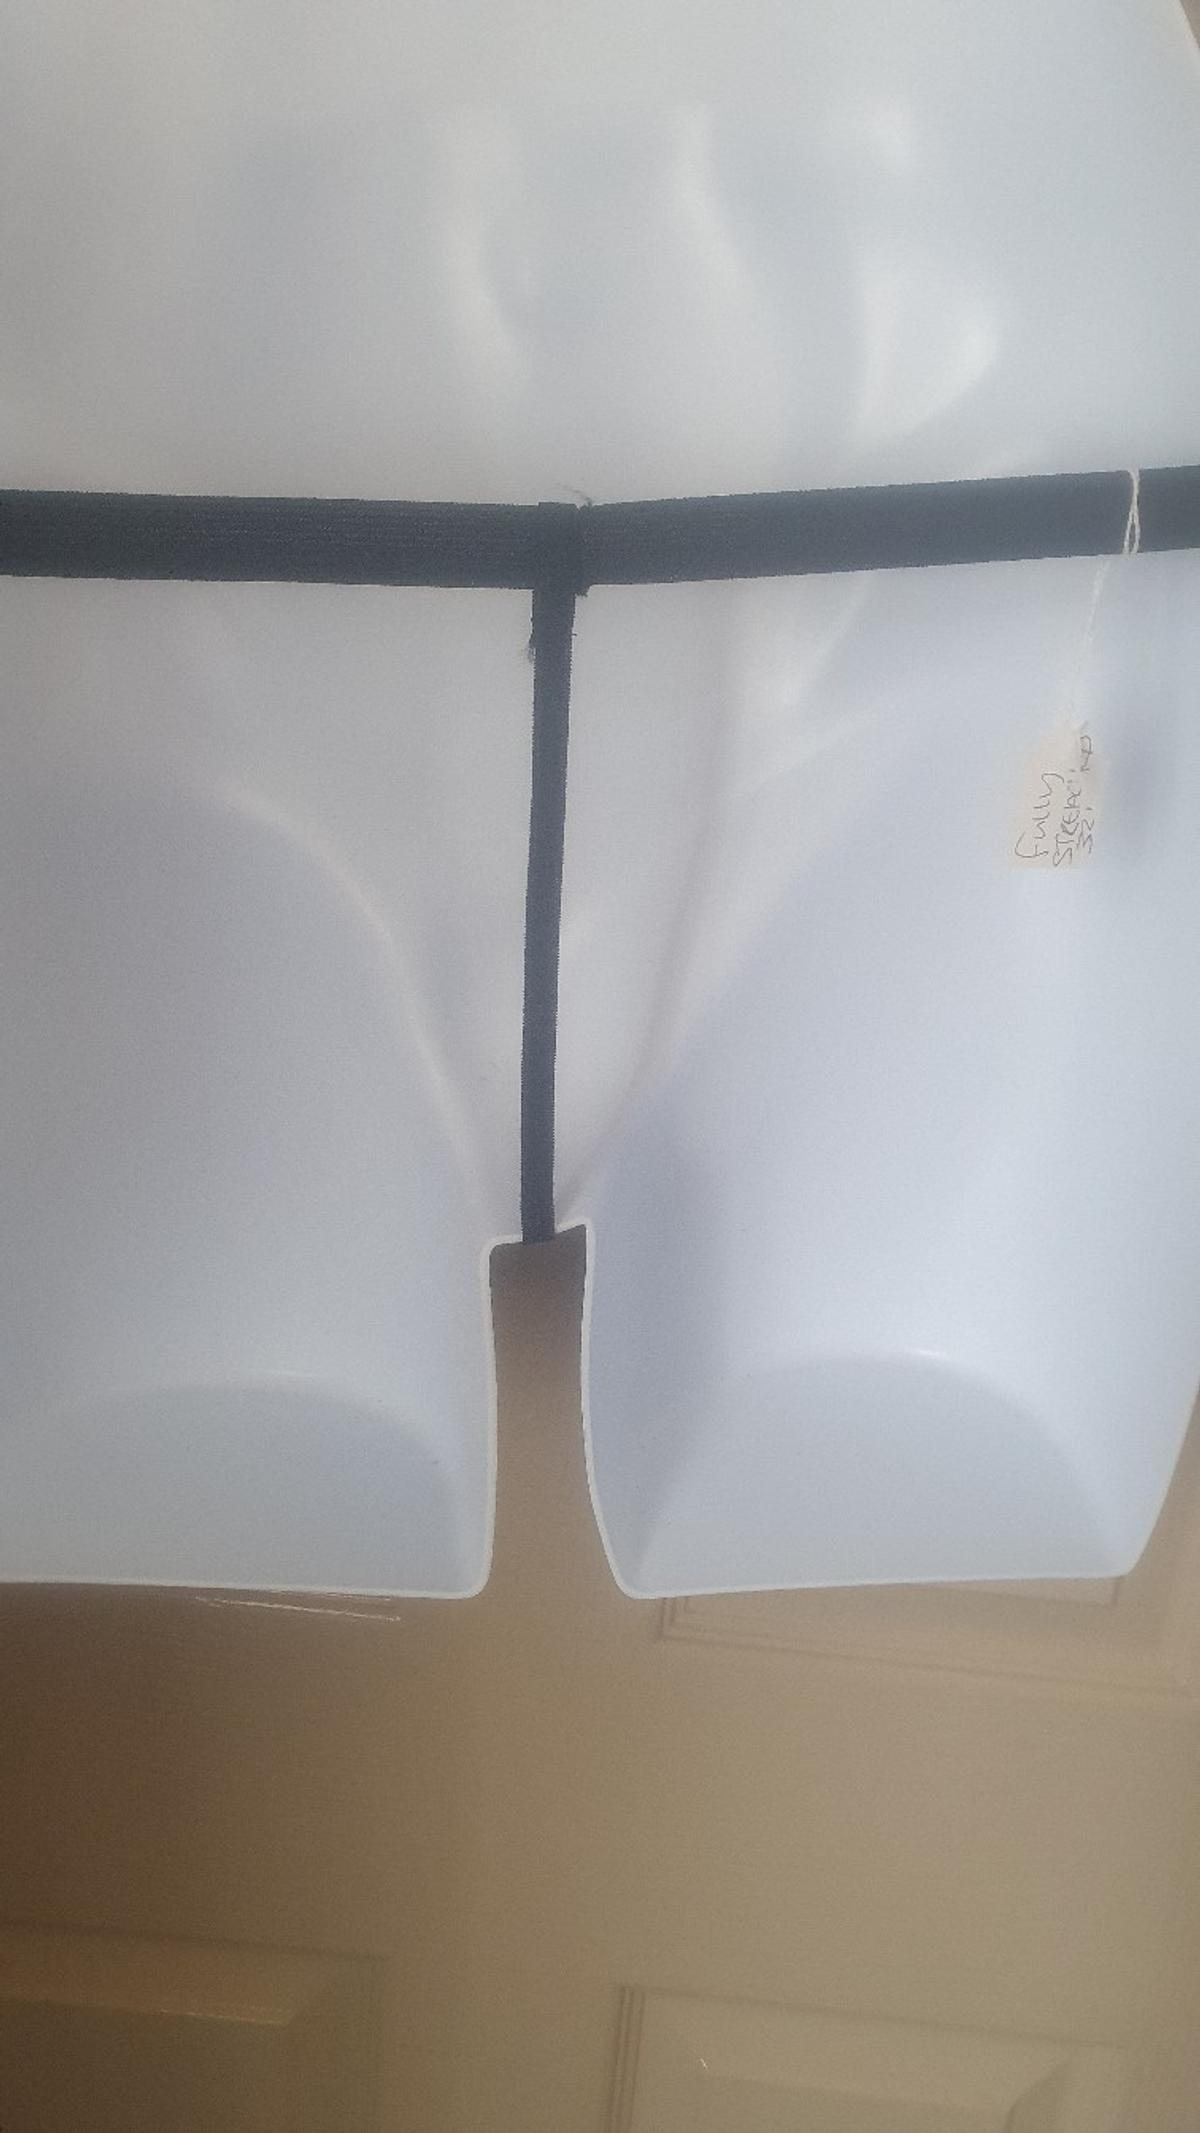 Classified mens g string 1 size I have measured.. basic size not using any streach 11.5' fully streached 32 . Good size pouch wide elastic. Pet n smoke free home PLZ DONT ASK FOR DELIVERY AS I CAN NOT MY PO IS CLOSED I DONT DRIVE if u ask this I will ignor u .tnx